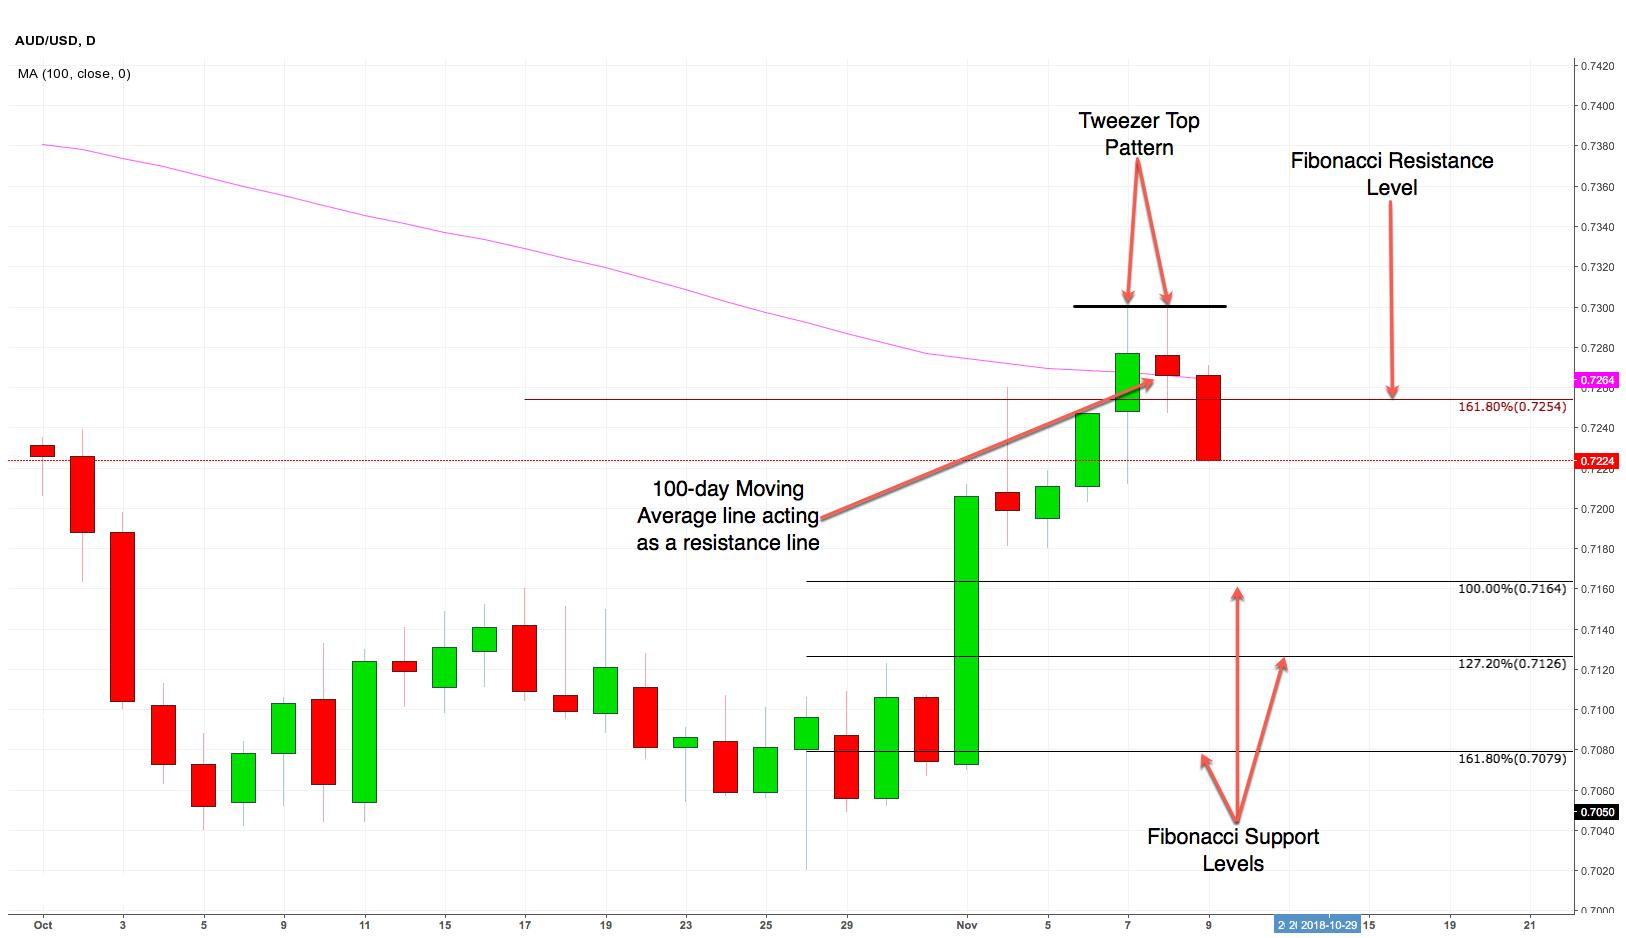 AUD/USD: The Aussie Dollar Has Slipped Into Murky Waters